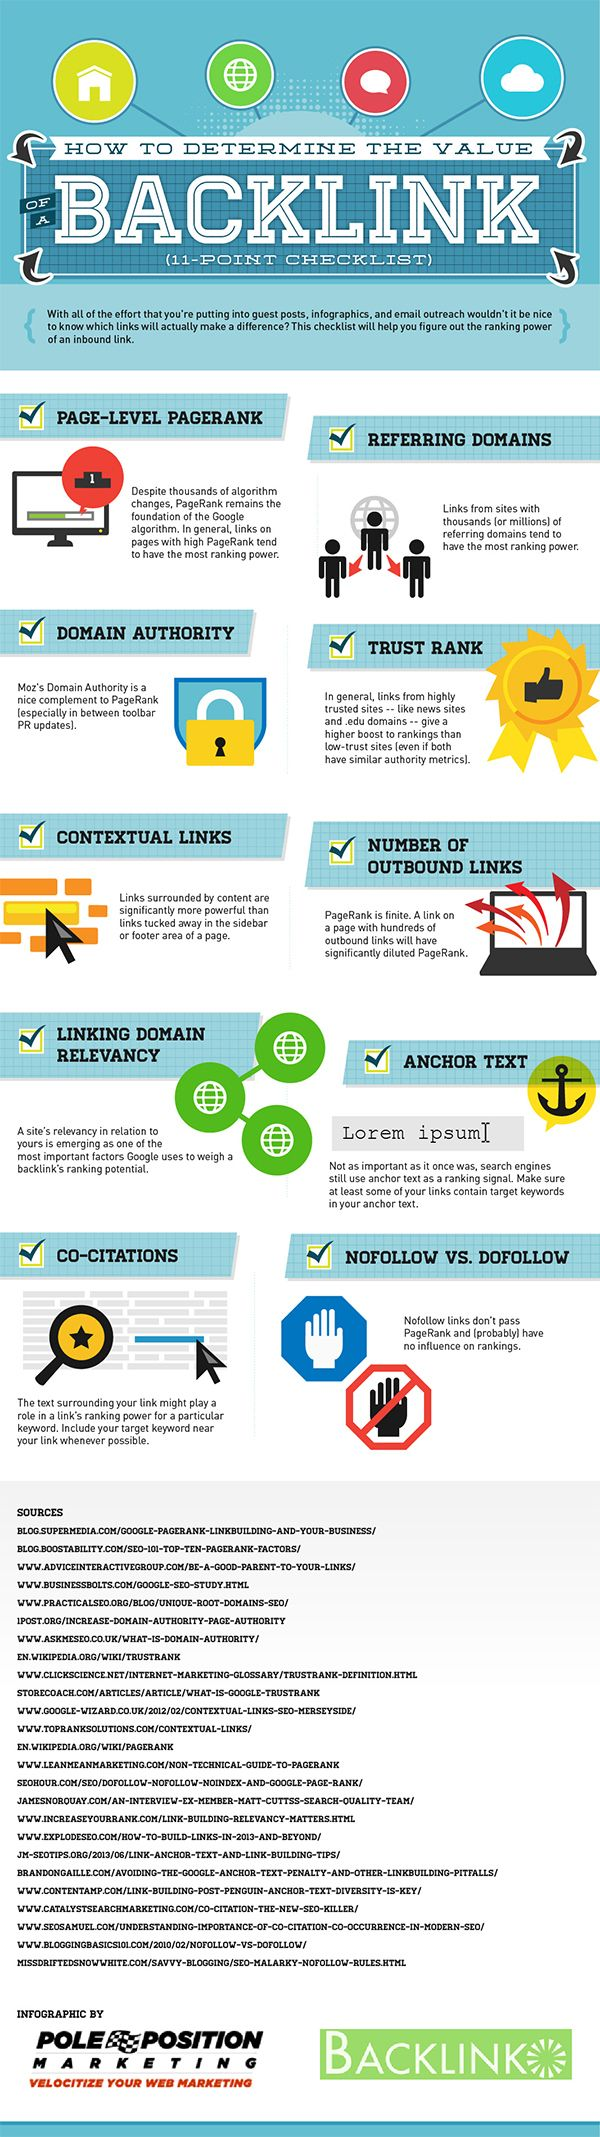 SEO Basics 11 Ways to Measure the Ranking Power of a Backlink #Infographic